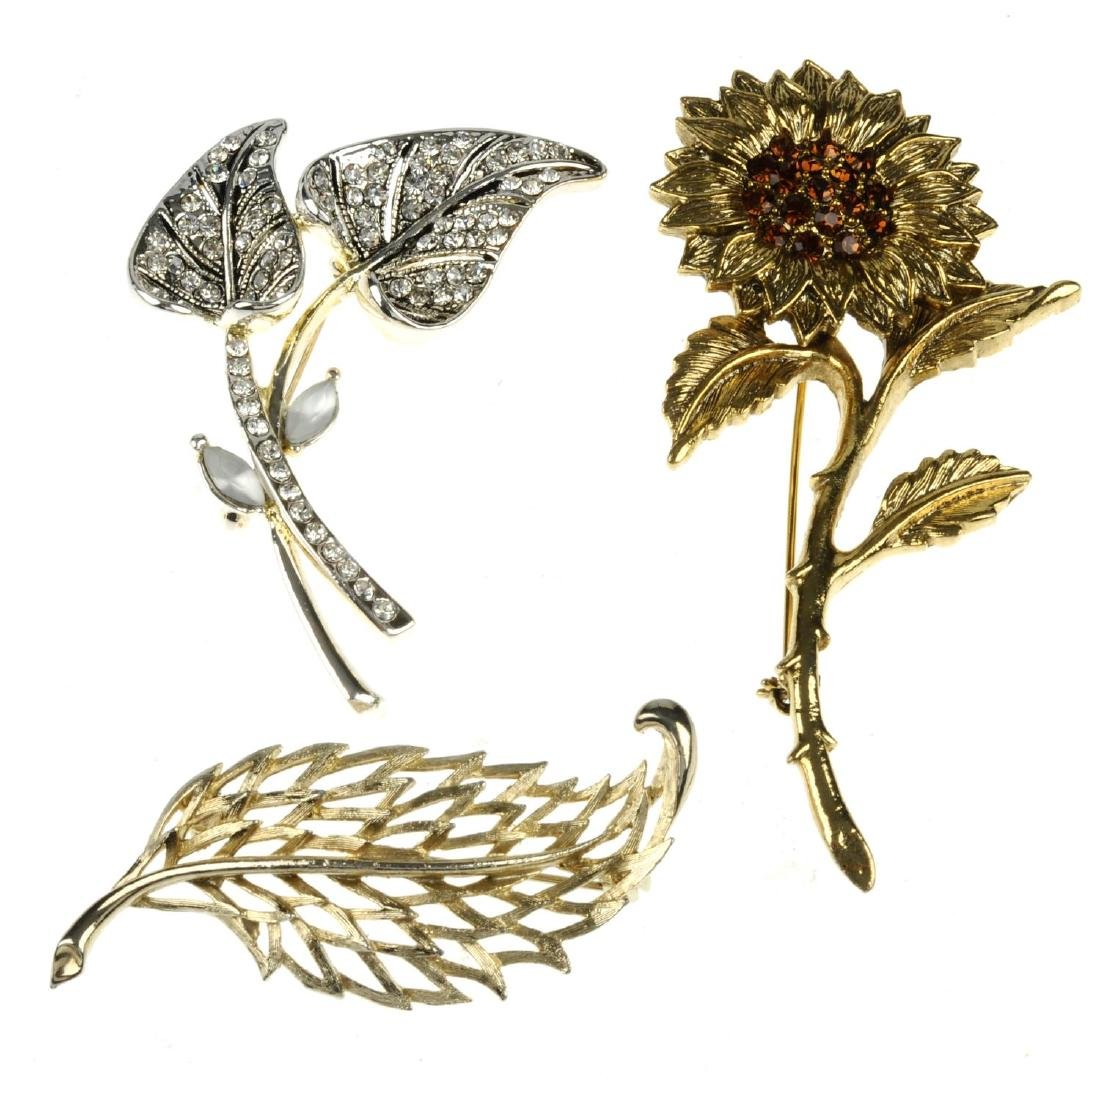 A selection of brooches and earrings. To include a